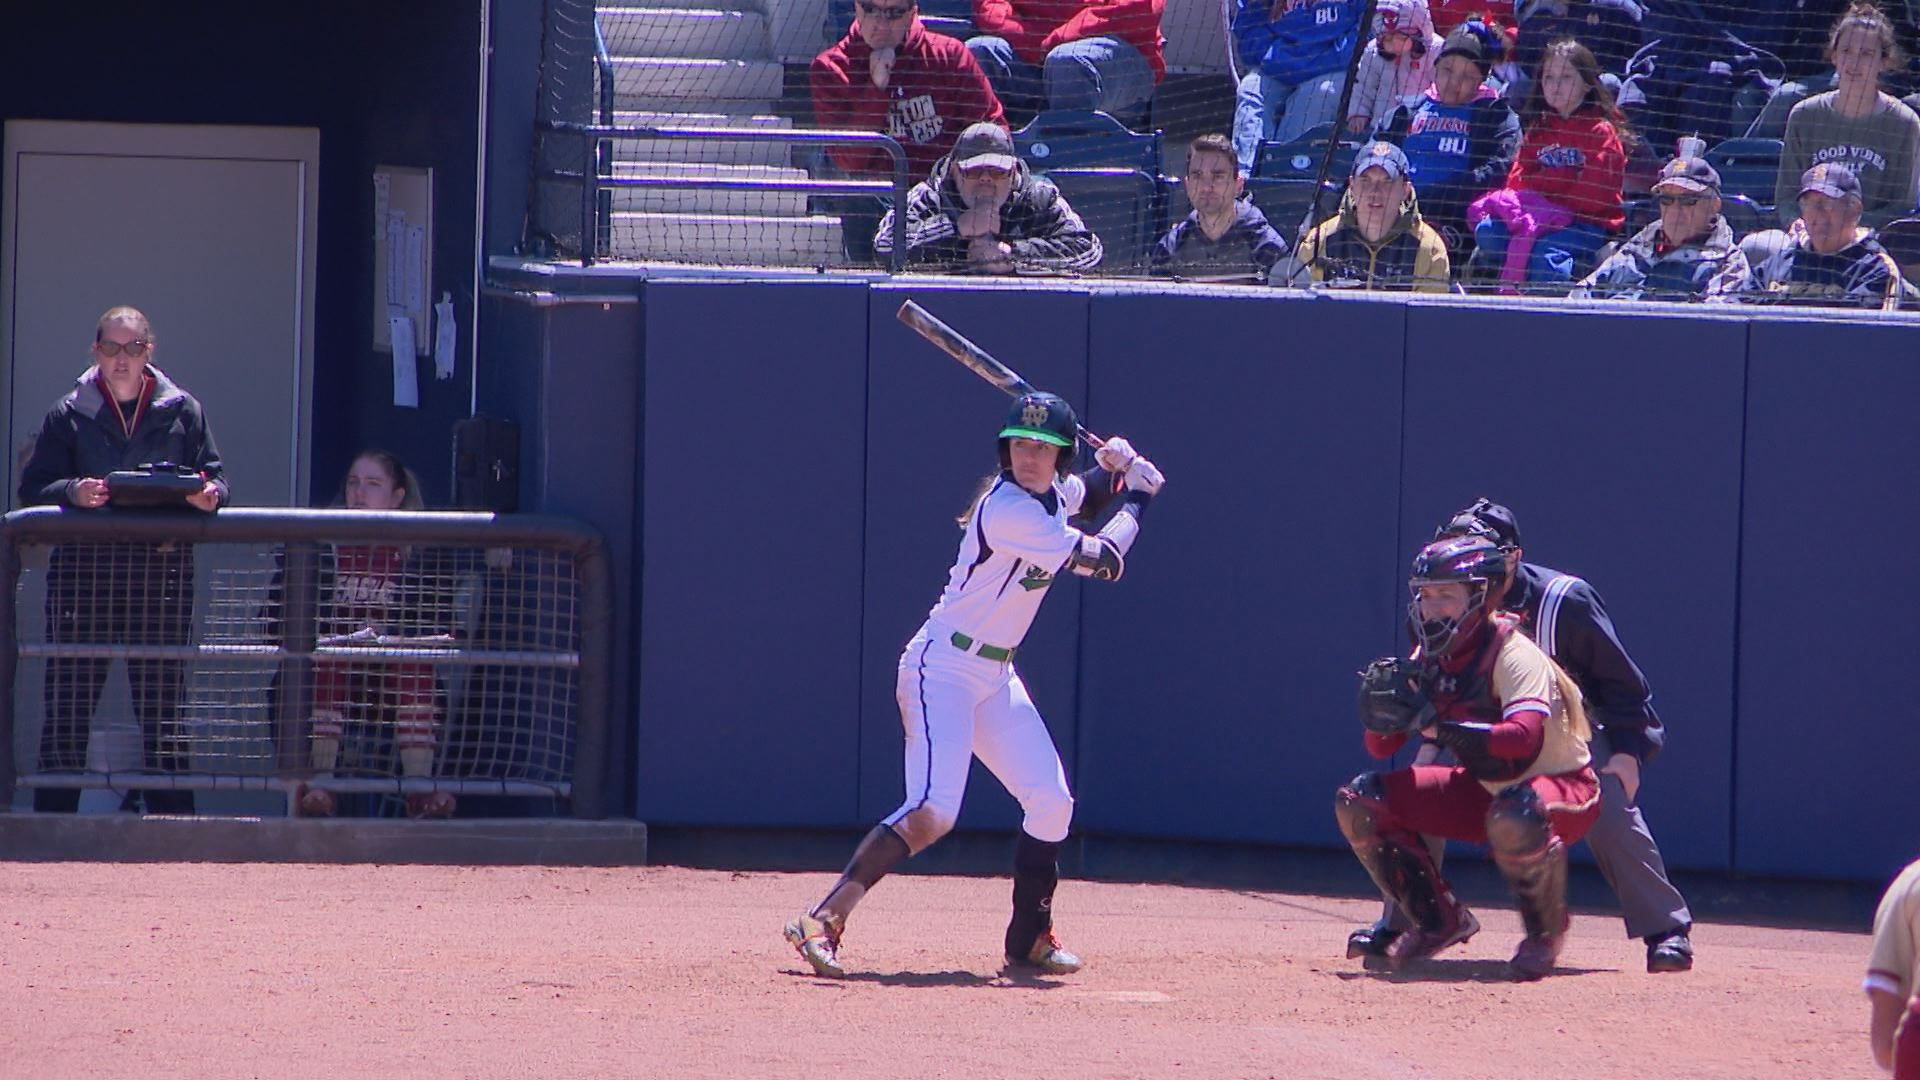 Karley Wester hits walk-off RBI single to help the Irish top Boston College 10-5 // WSBT 22 Photo